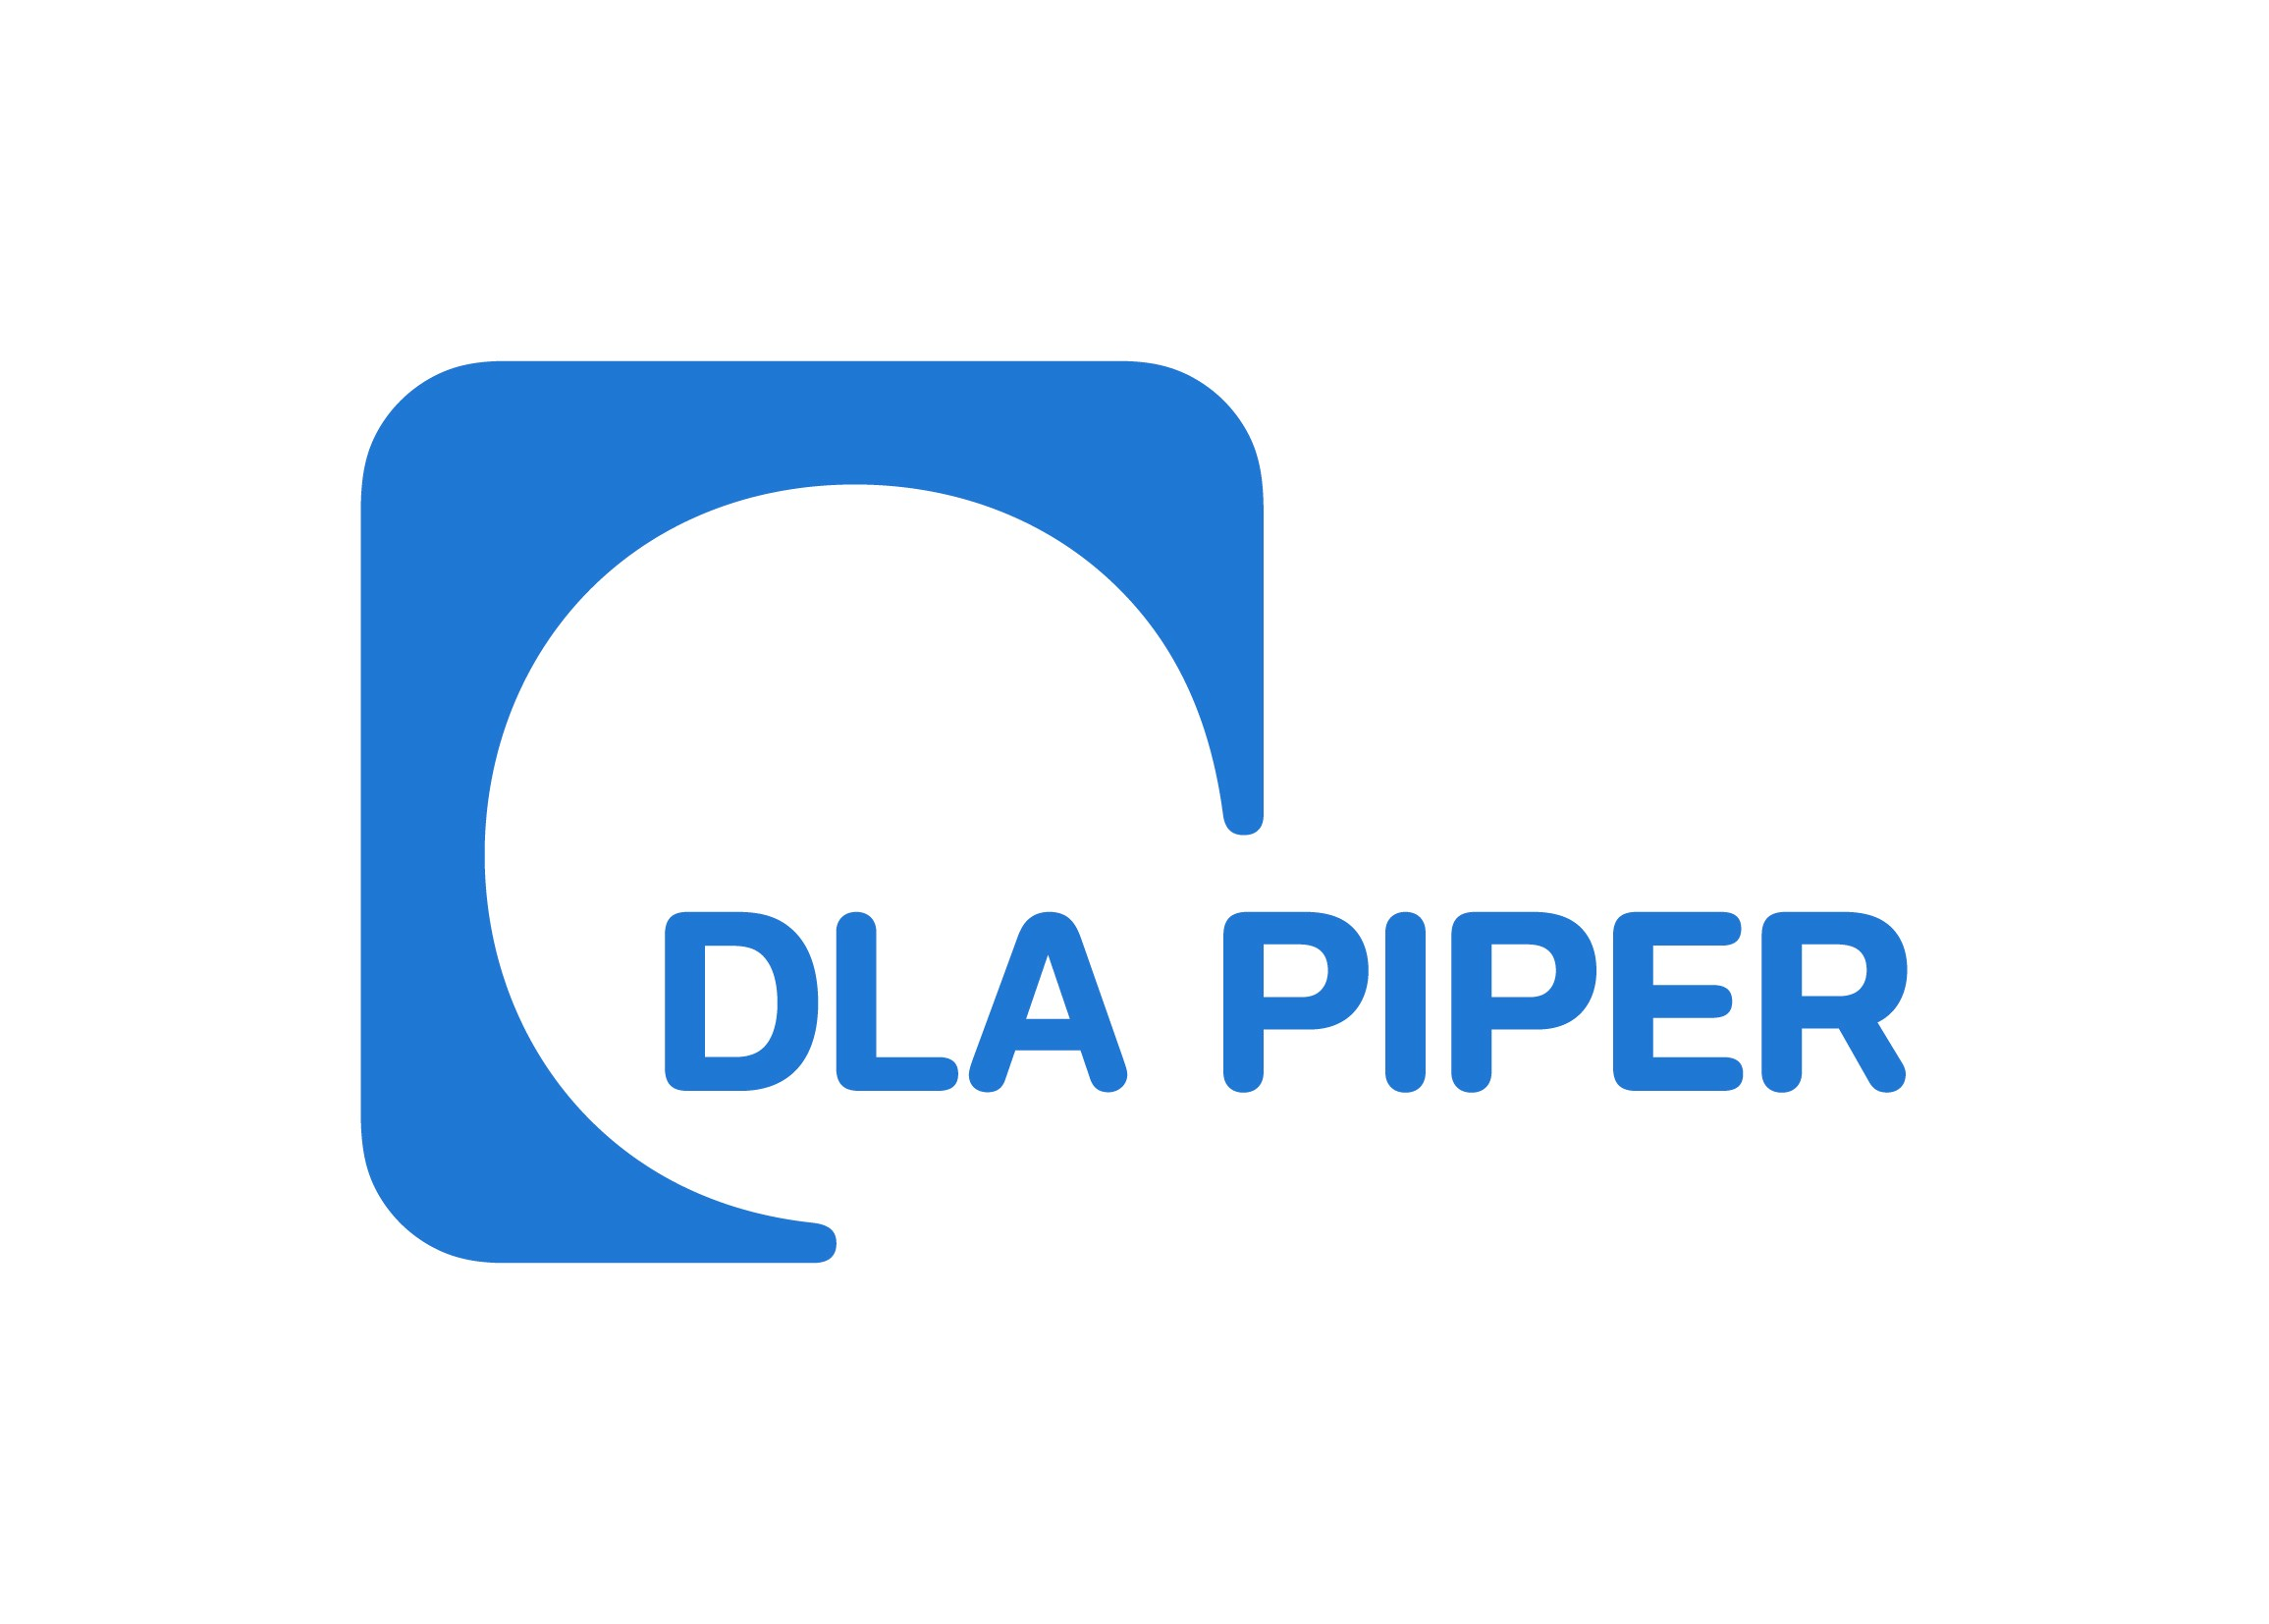 DLA_Piper_rgb - Copy